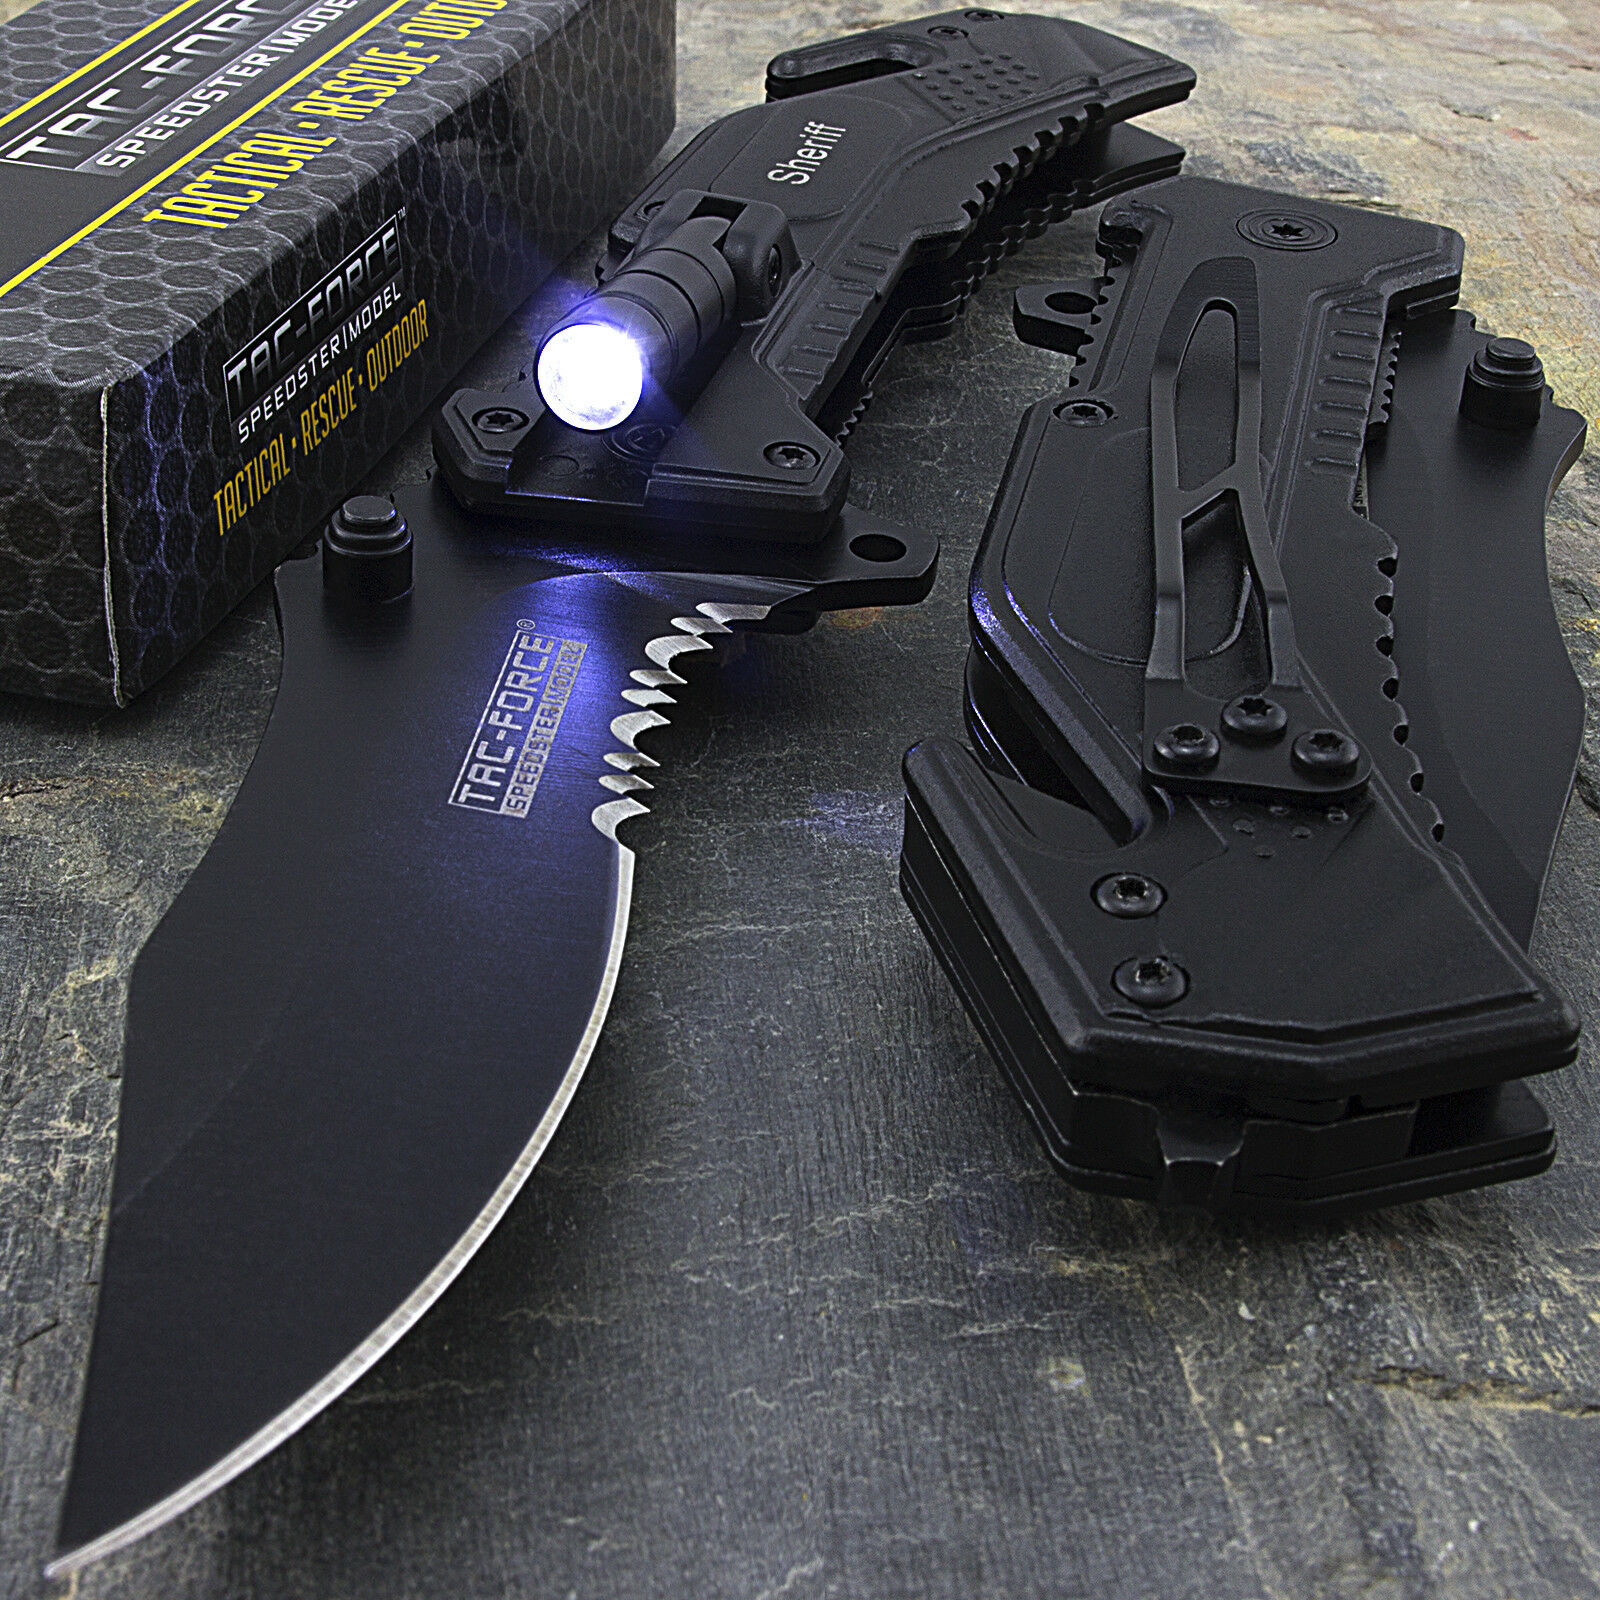 Купить Tac-Force - 8.25 SHERIFF TAC FORCE SPRING ASSISTED FOLDING POCKET KNIFE w/ LED FLASHLIGHT